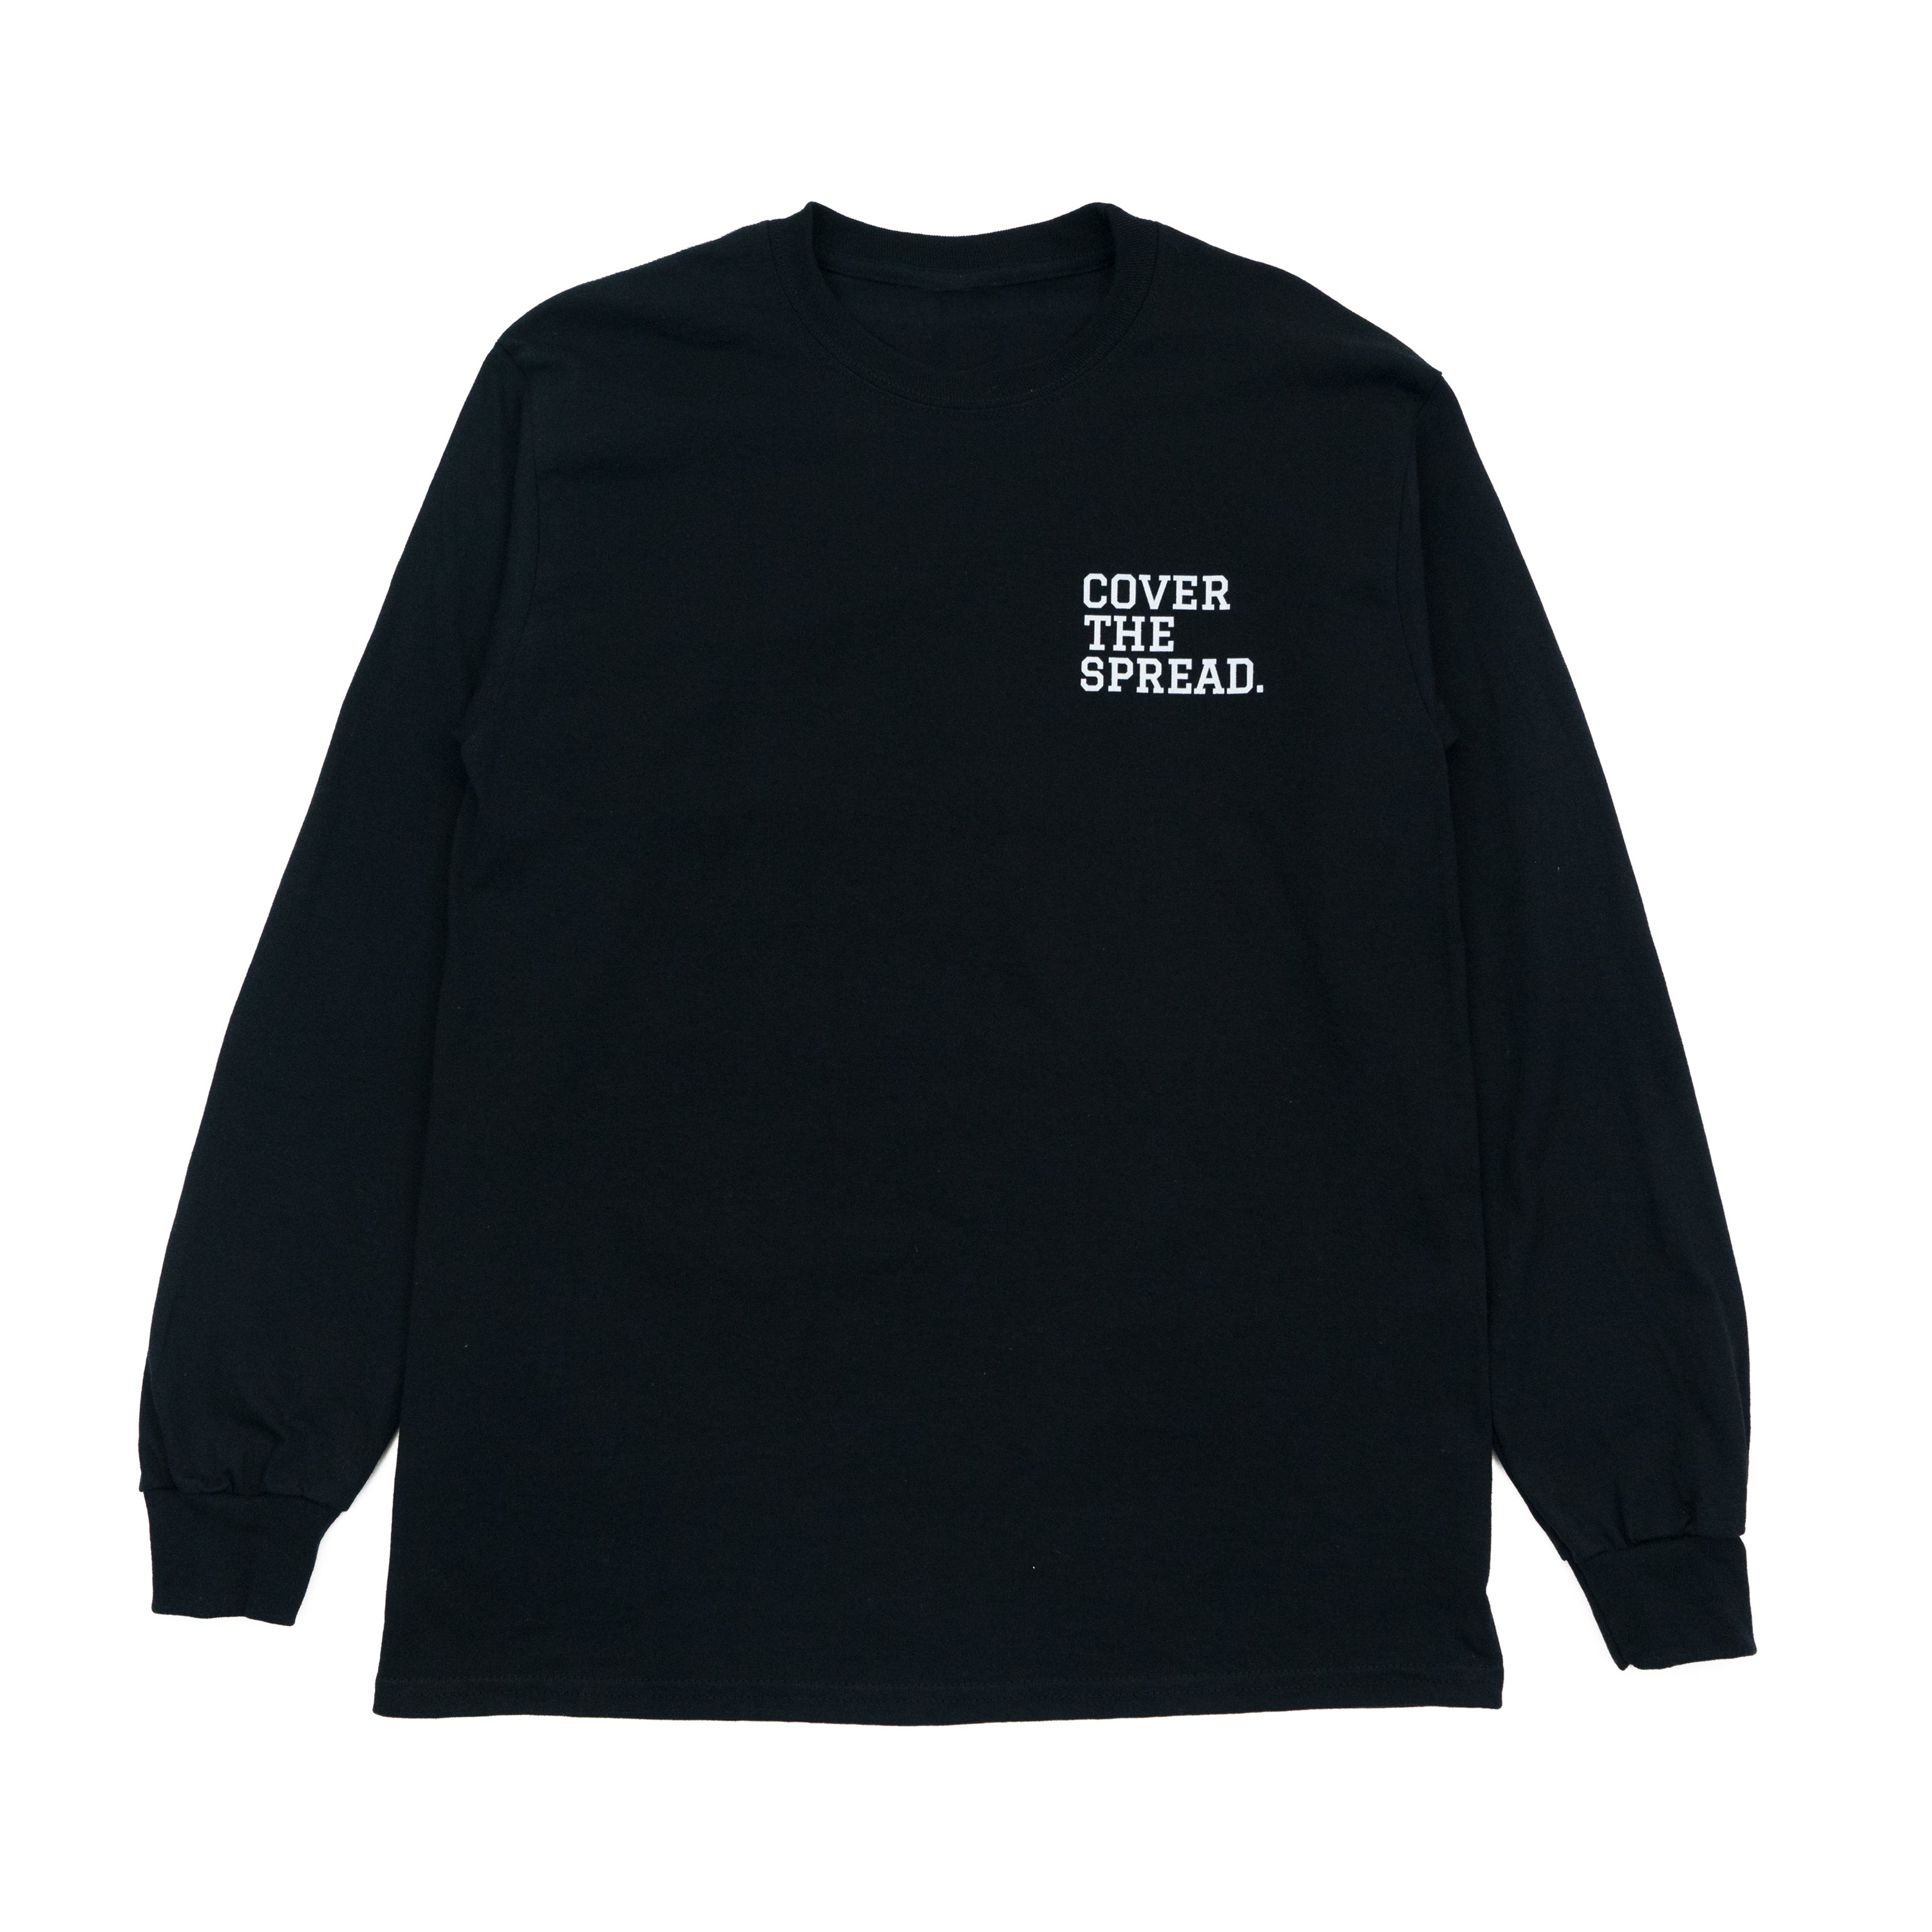 cover the spread mens long sleeve tee